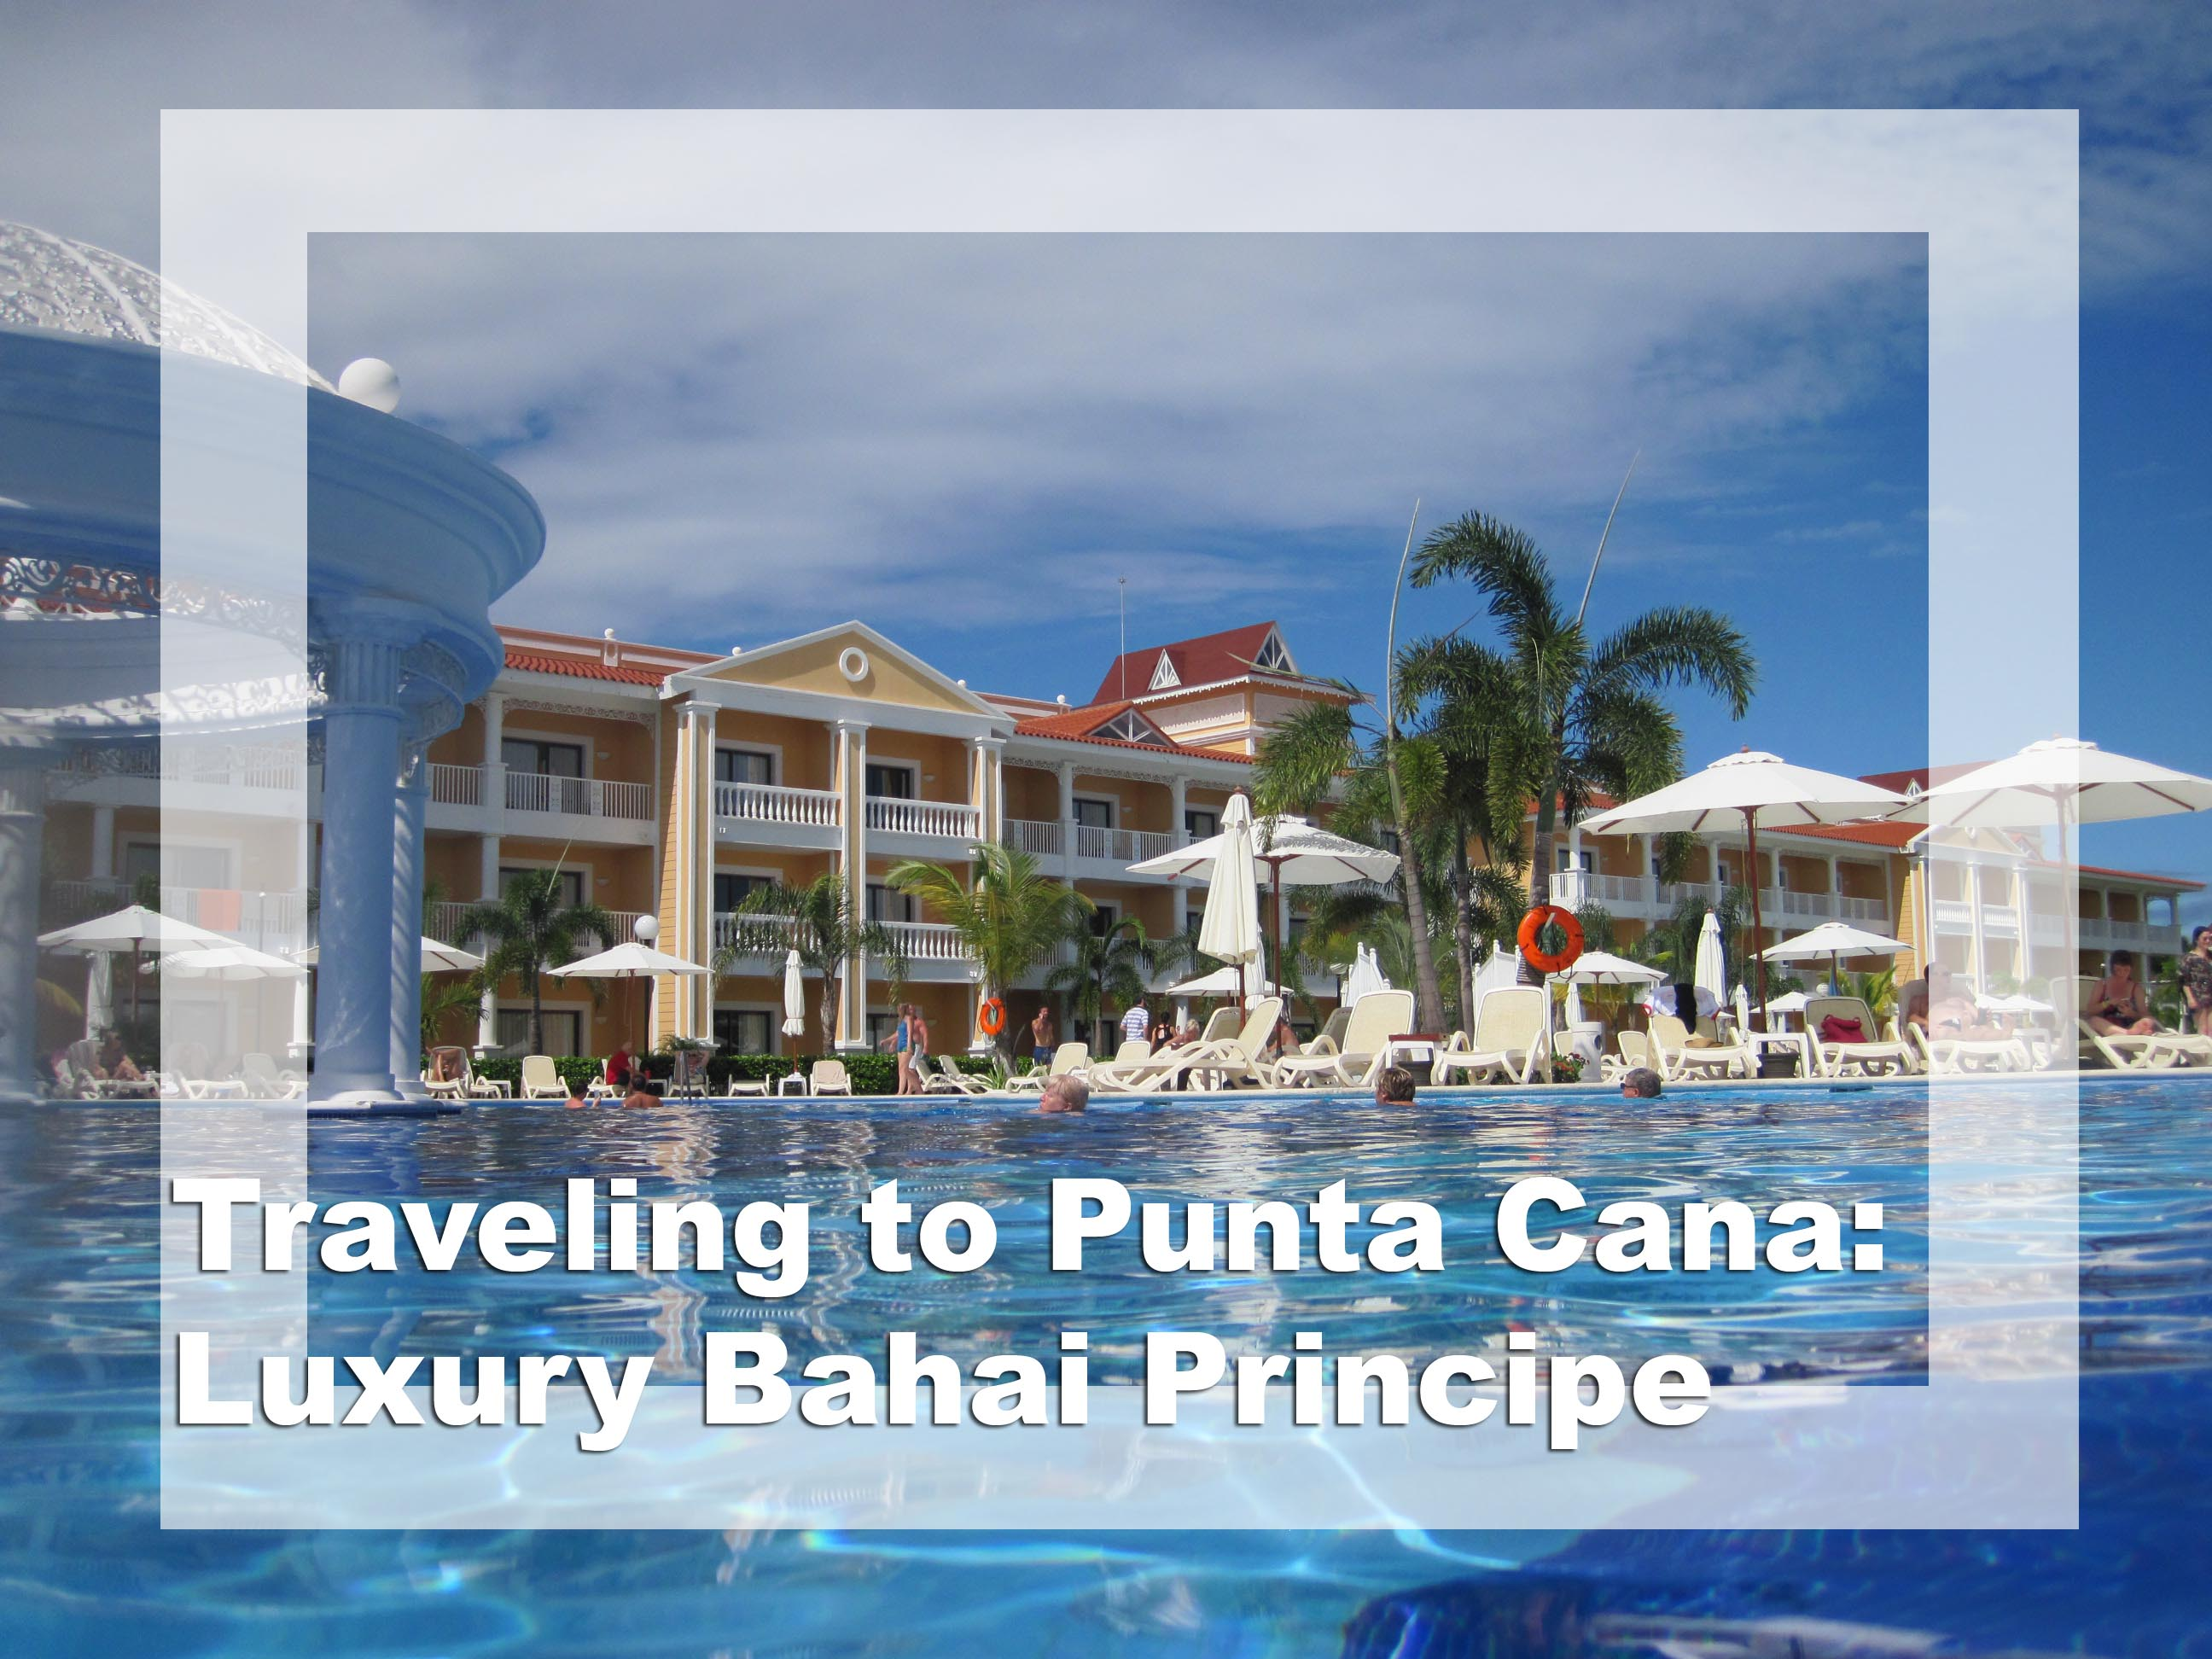 Vacation in Punta Cana: Staying at the Luxury Bahai Principe